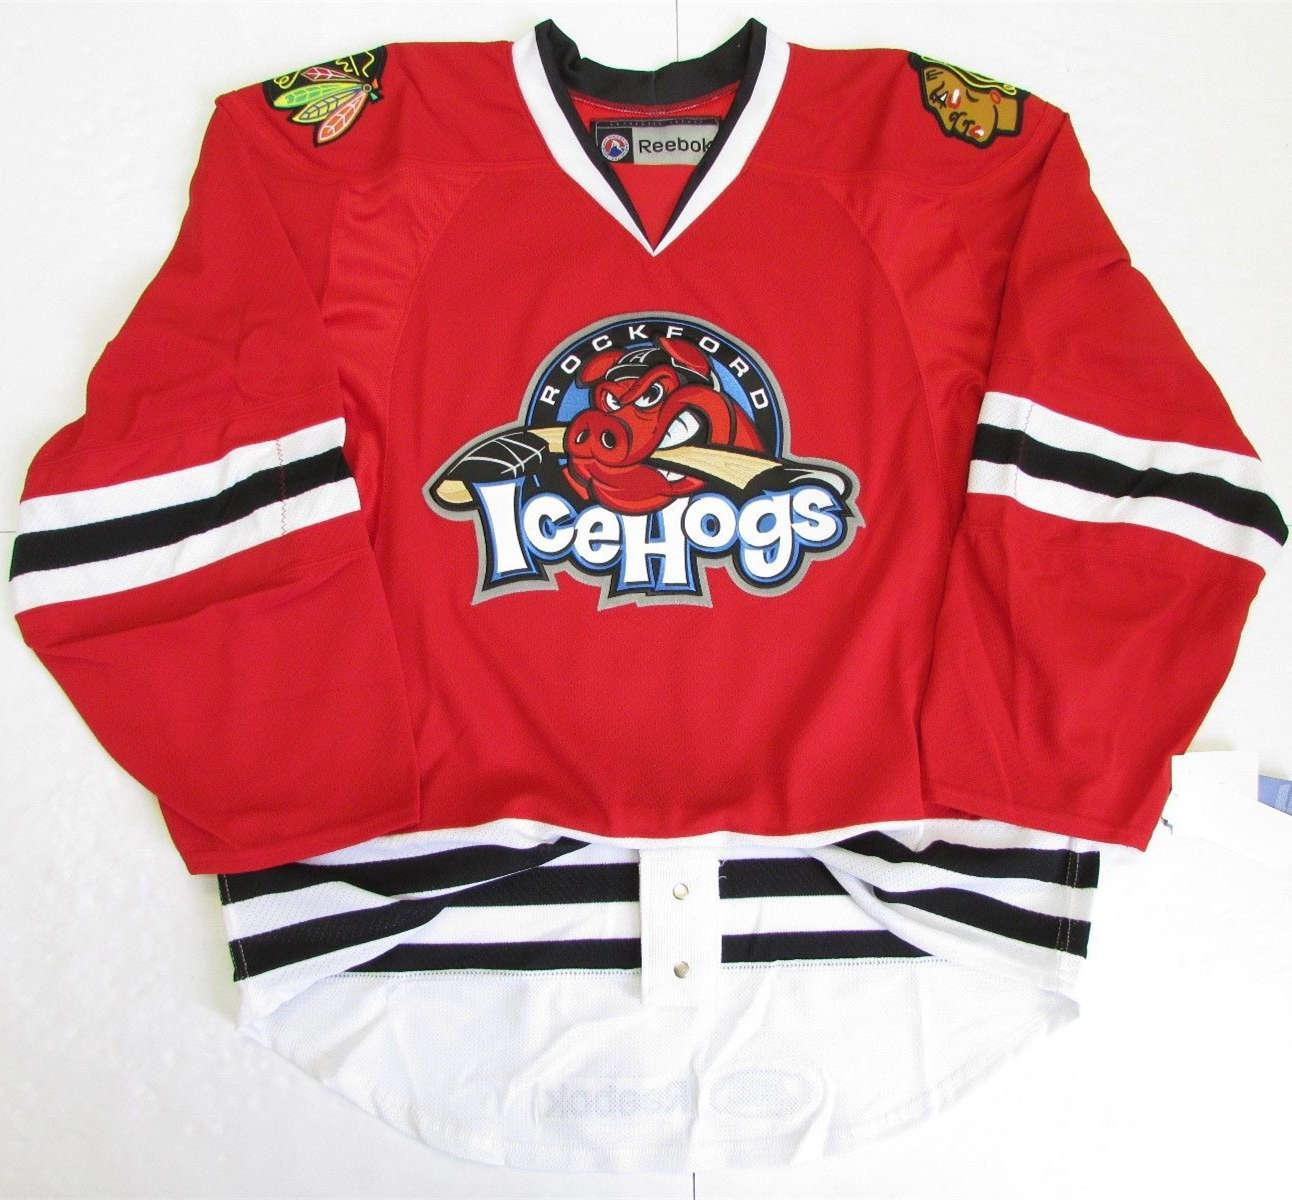 44b5d5a0f7b 2019 Rockford IceHogs Premier Hockey Jersey Embroidery Customize Any Number  And Name Custom Goalie Cut Goalit Mens Womens Youth Hockey Jerseys From  Fanatics ...